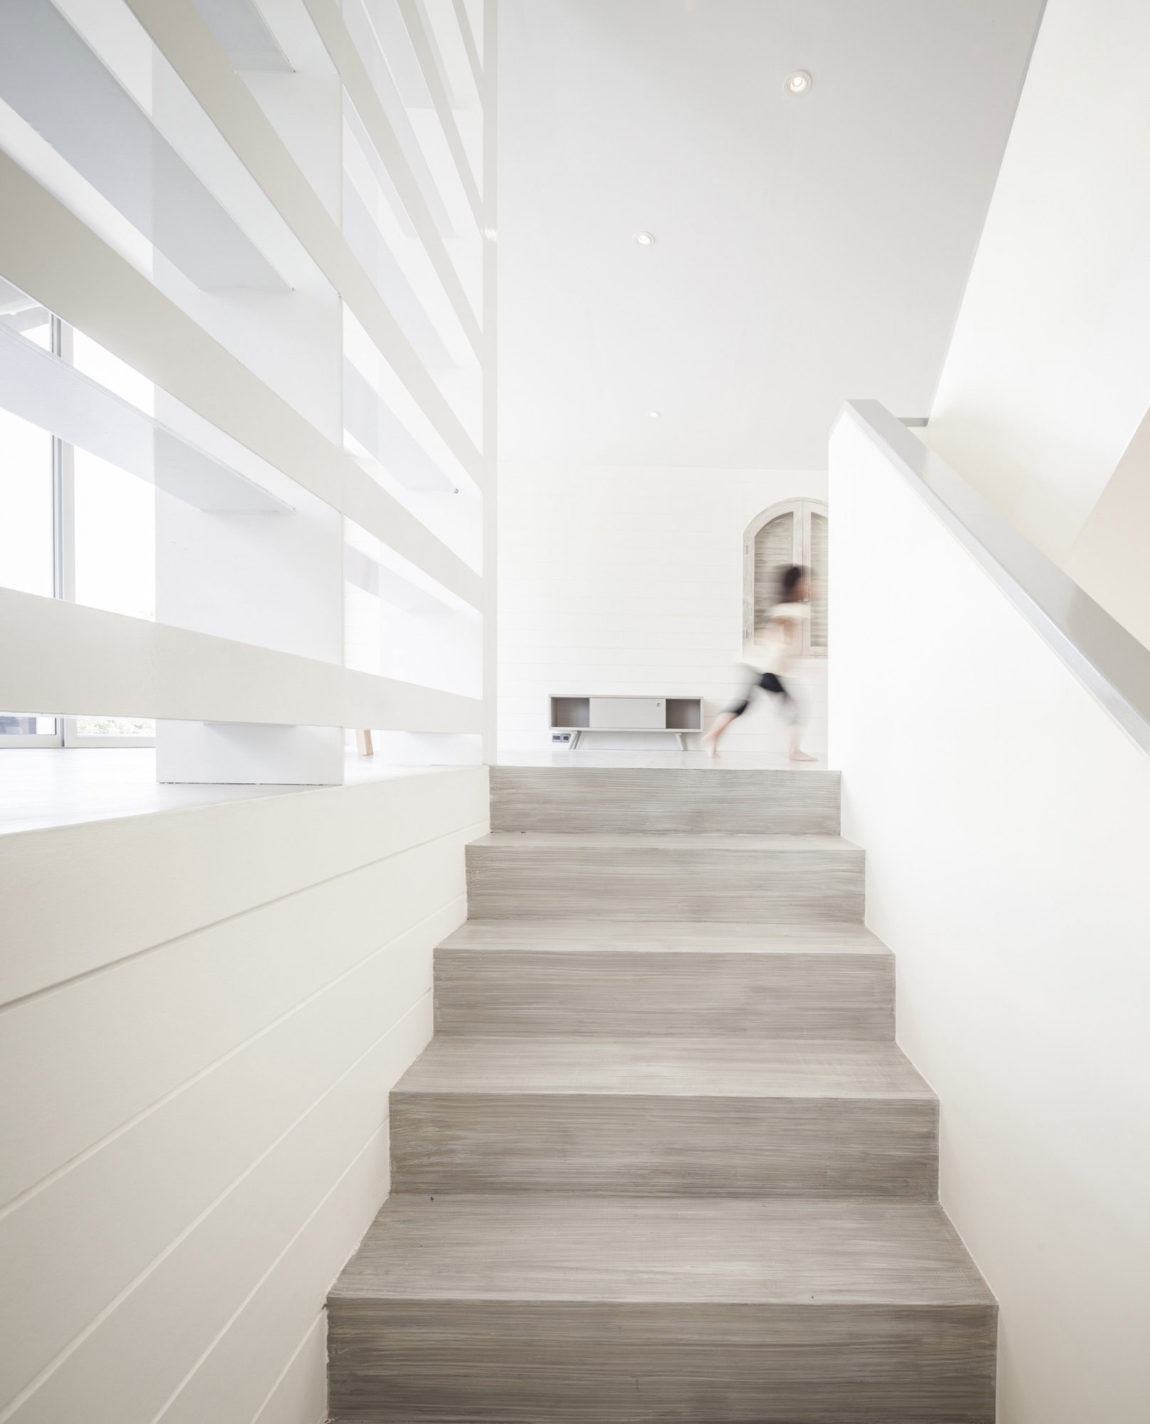 O-ART-IM House by SOOK Architects (13)